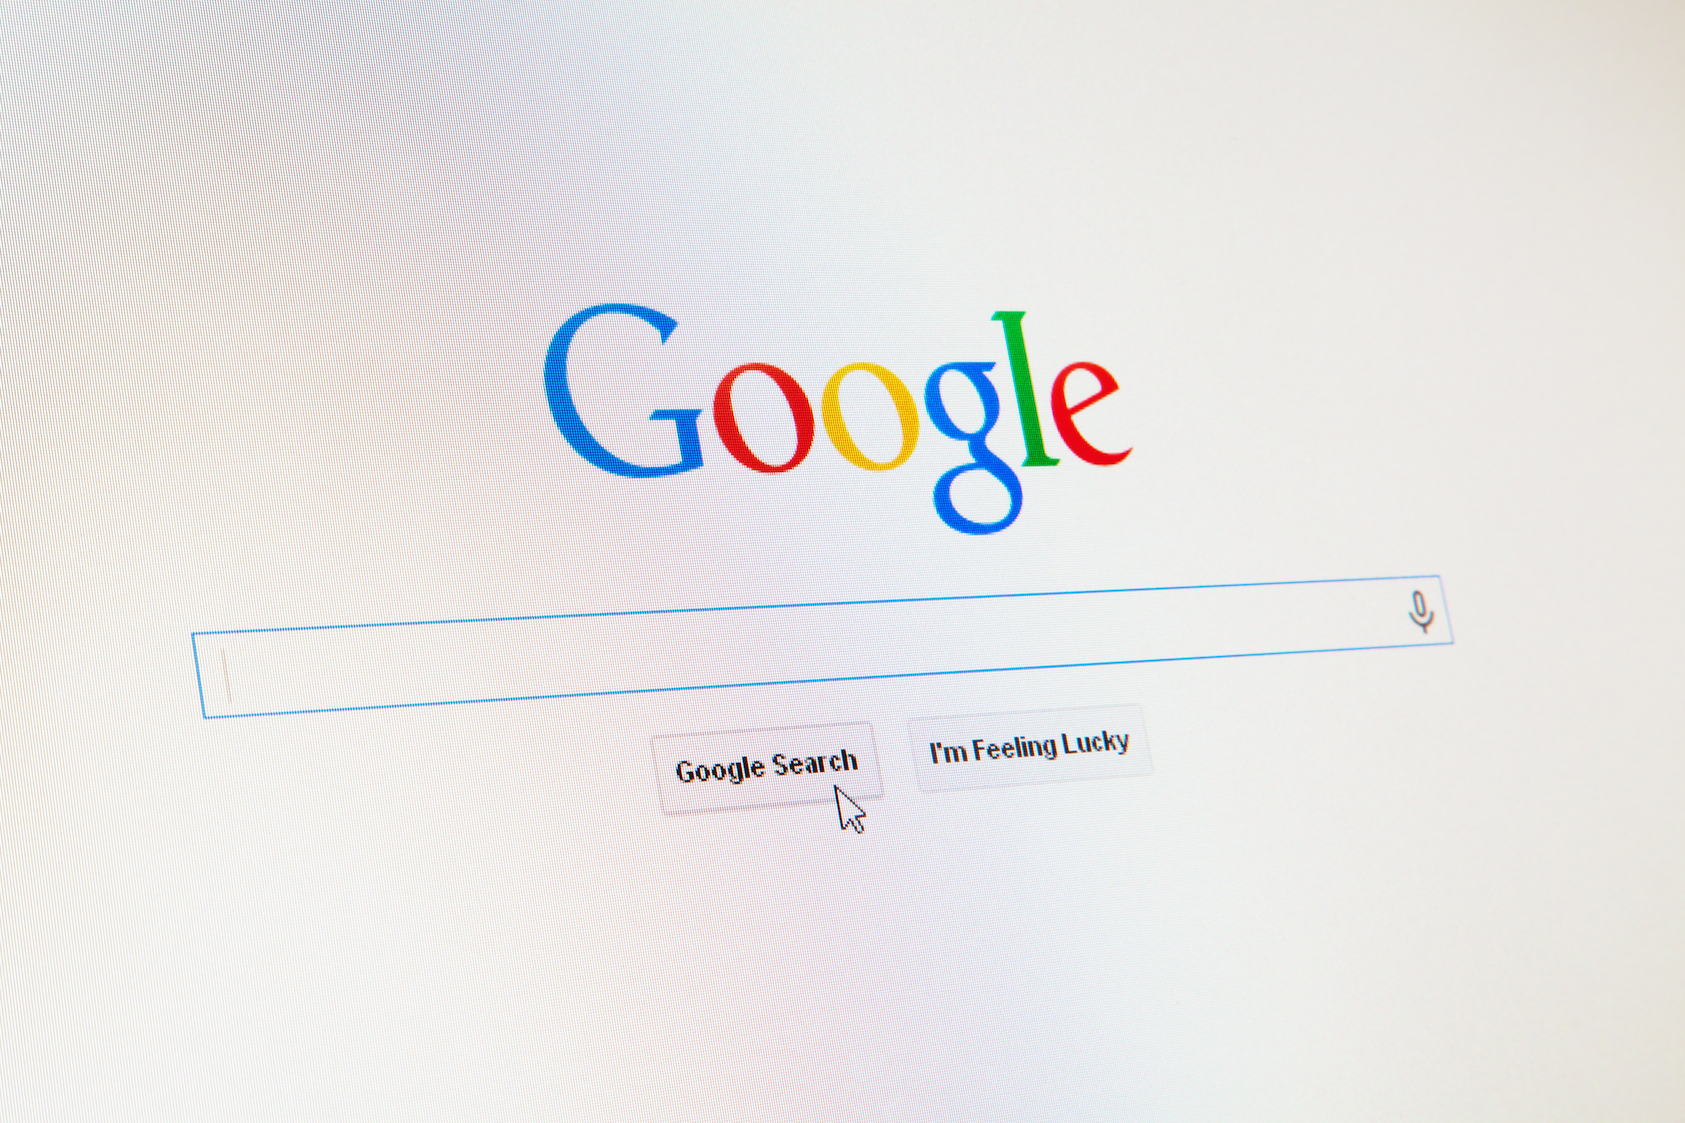 6 Reasons Why Your Post May Have Disappeared From Google & How To Deal With It